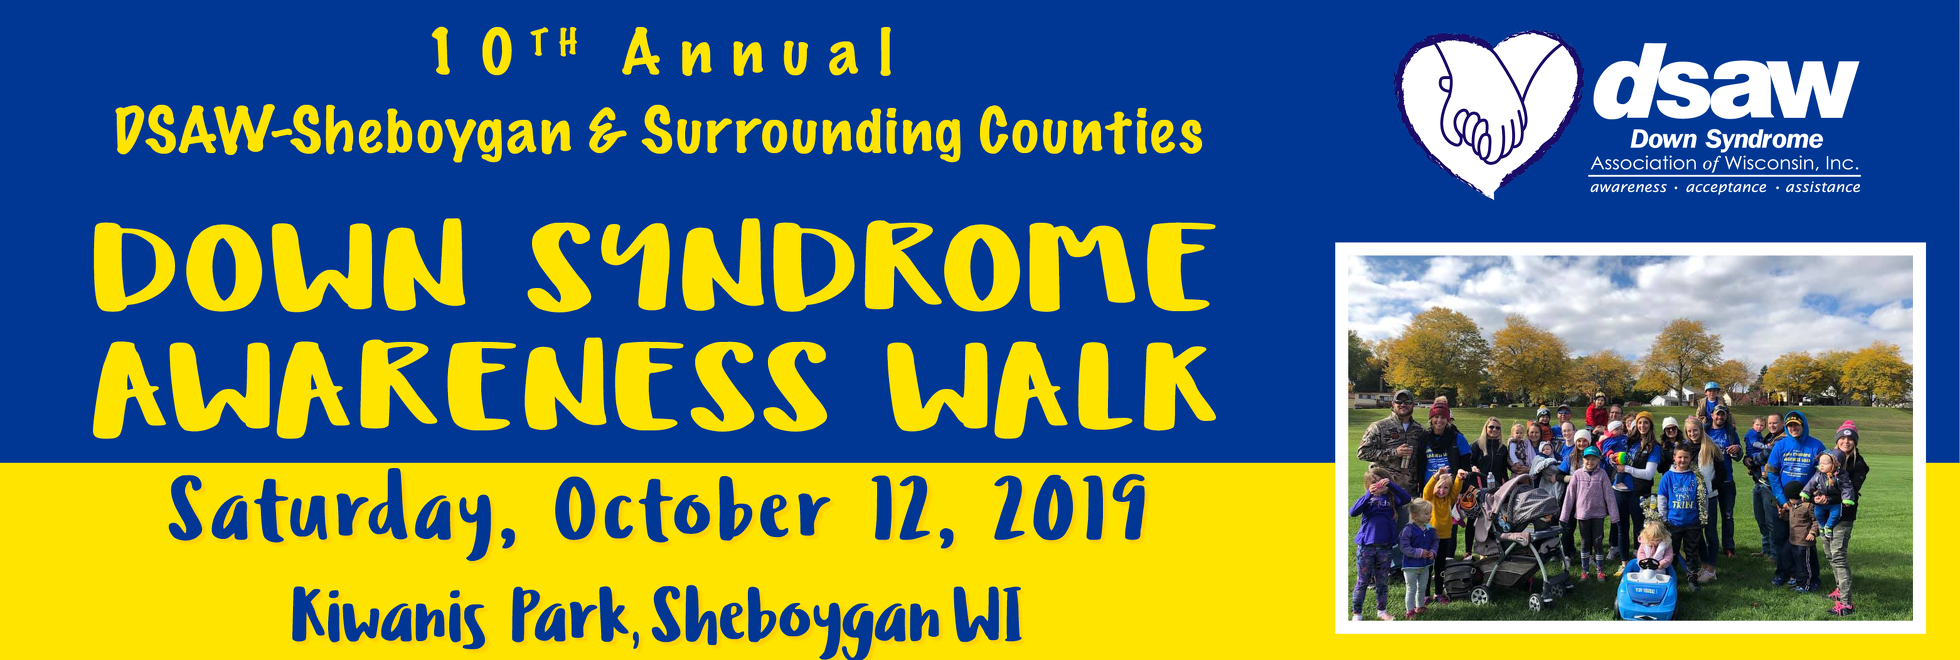 Sheboygan Down Syndrome Awareness Walk 2019